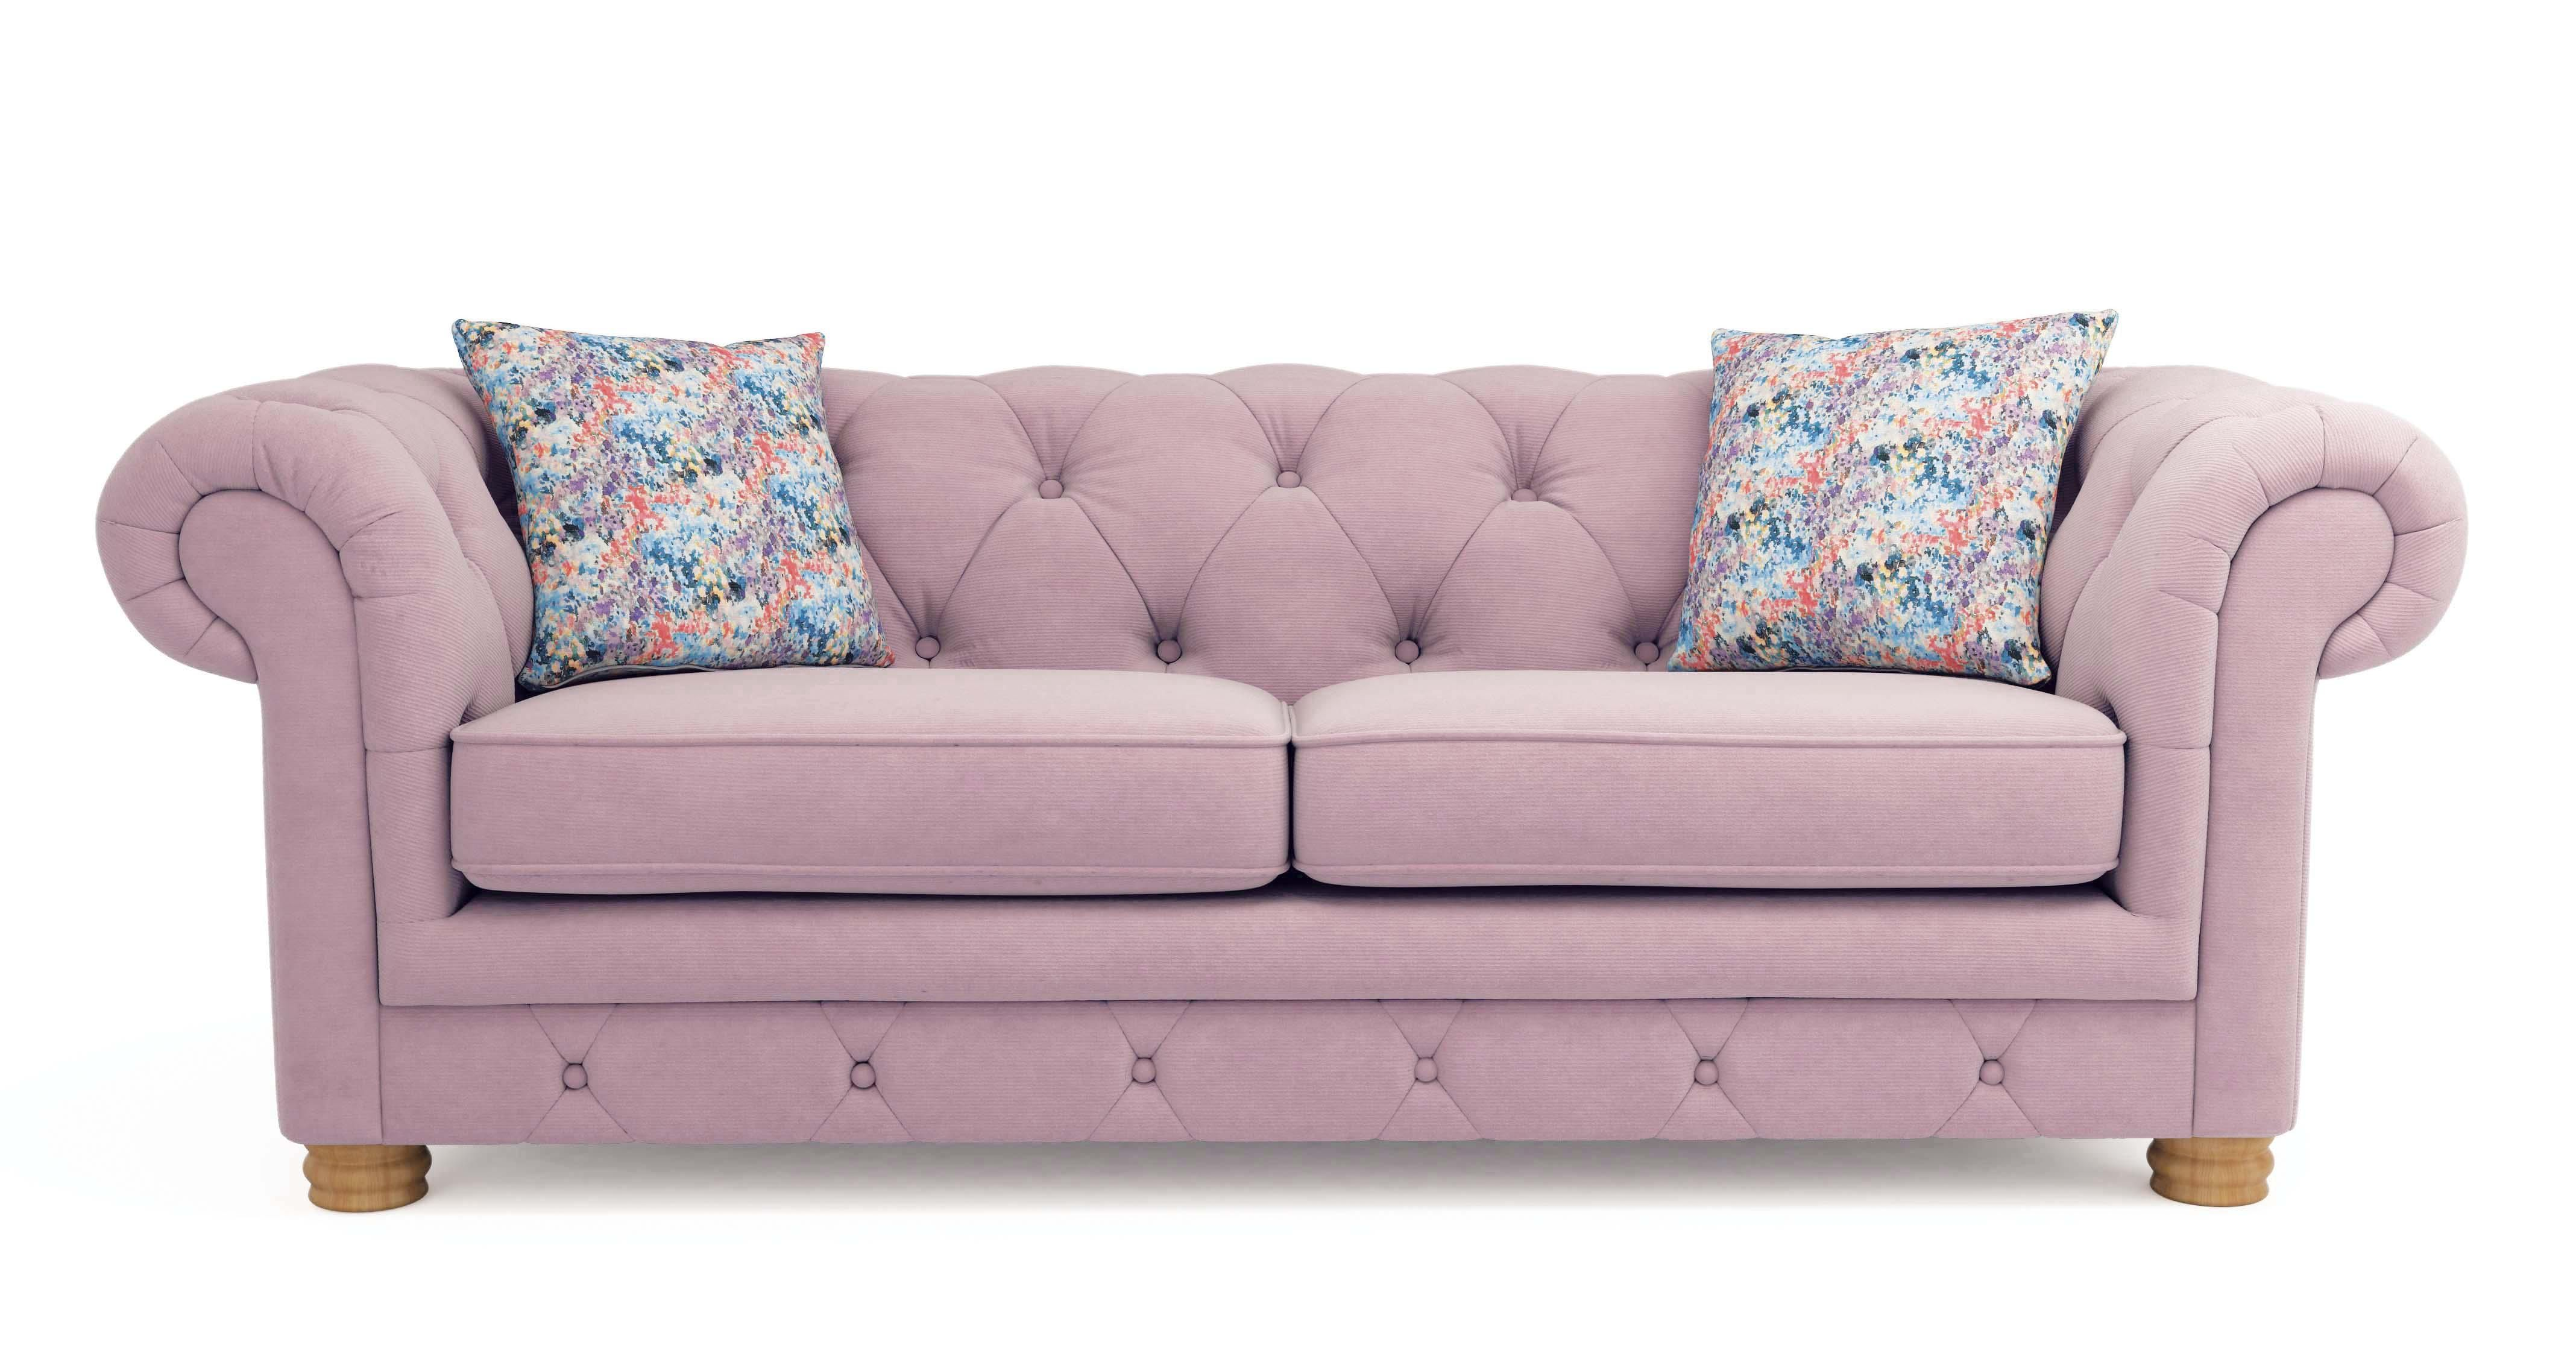 Beatrice 3 Seater Sofa Plaza DFS Dfs sofa bed, 3